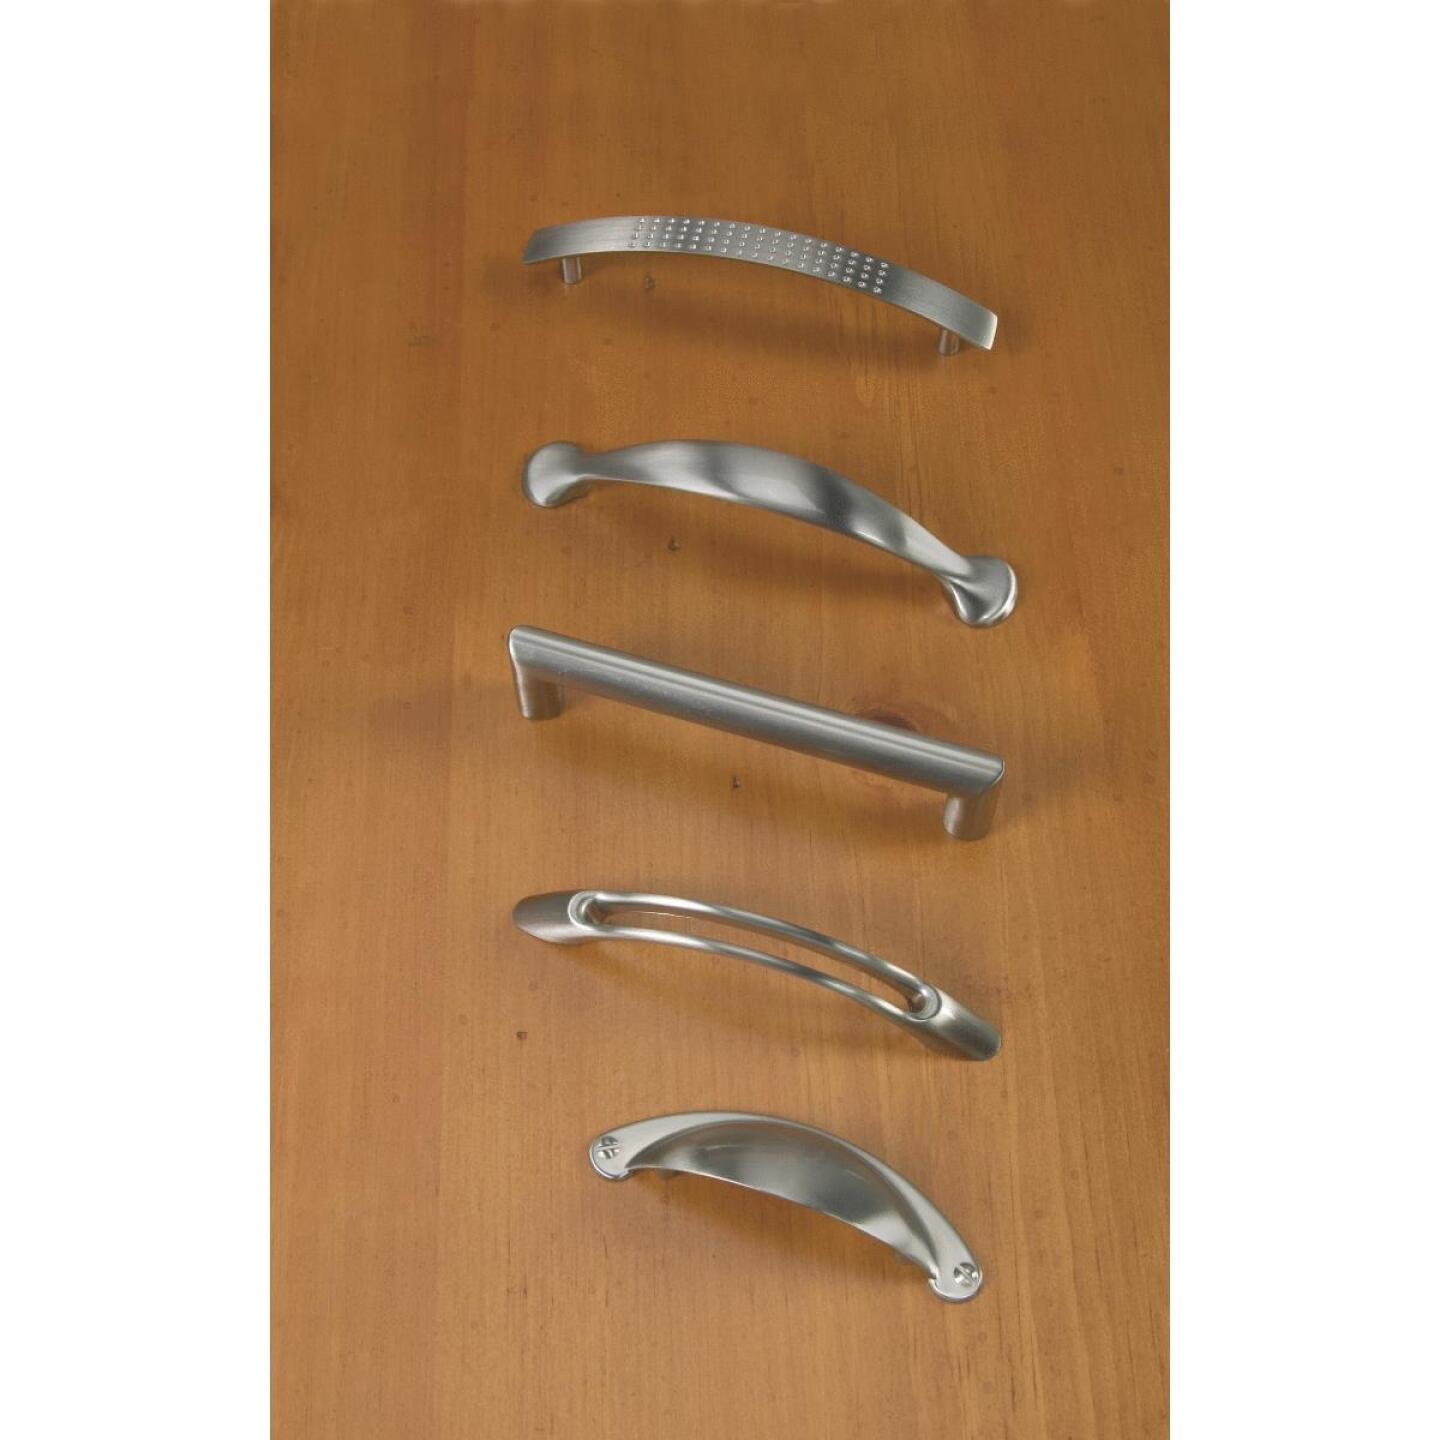 Amerock Essential'z 2-1/2 In. Nickel 2-1/2 In. Cabinet Pull Image 3